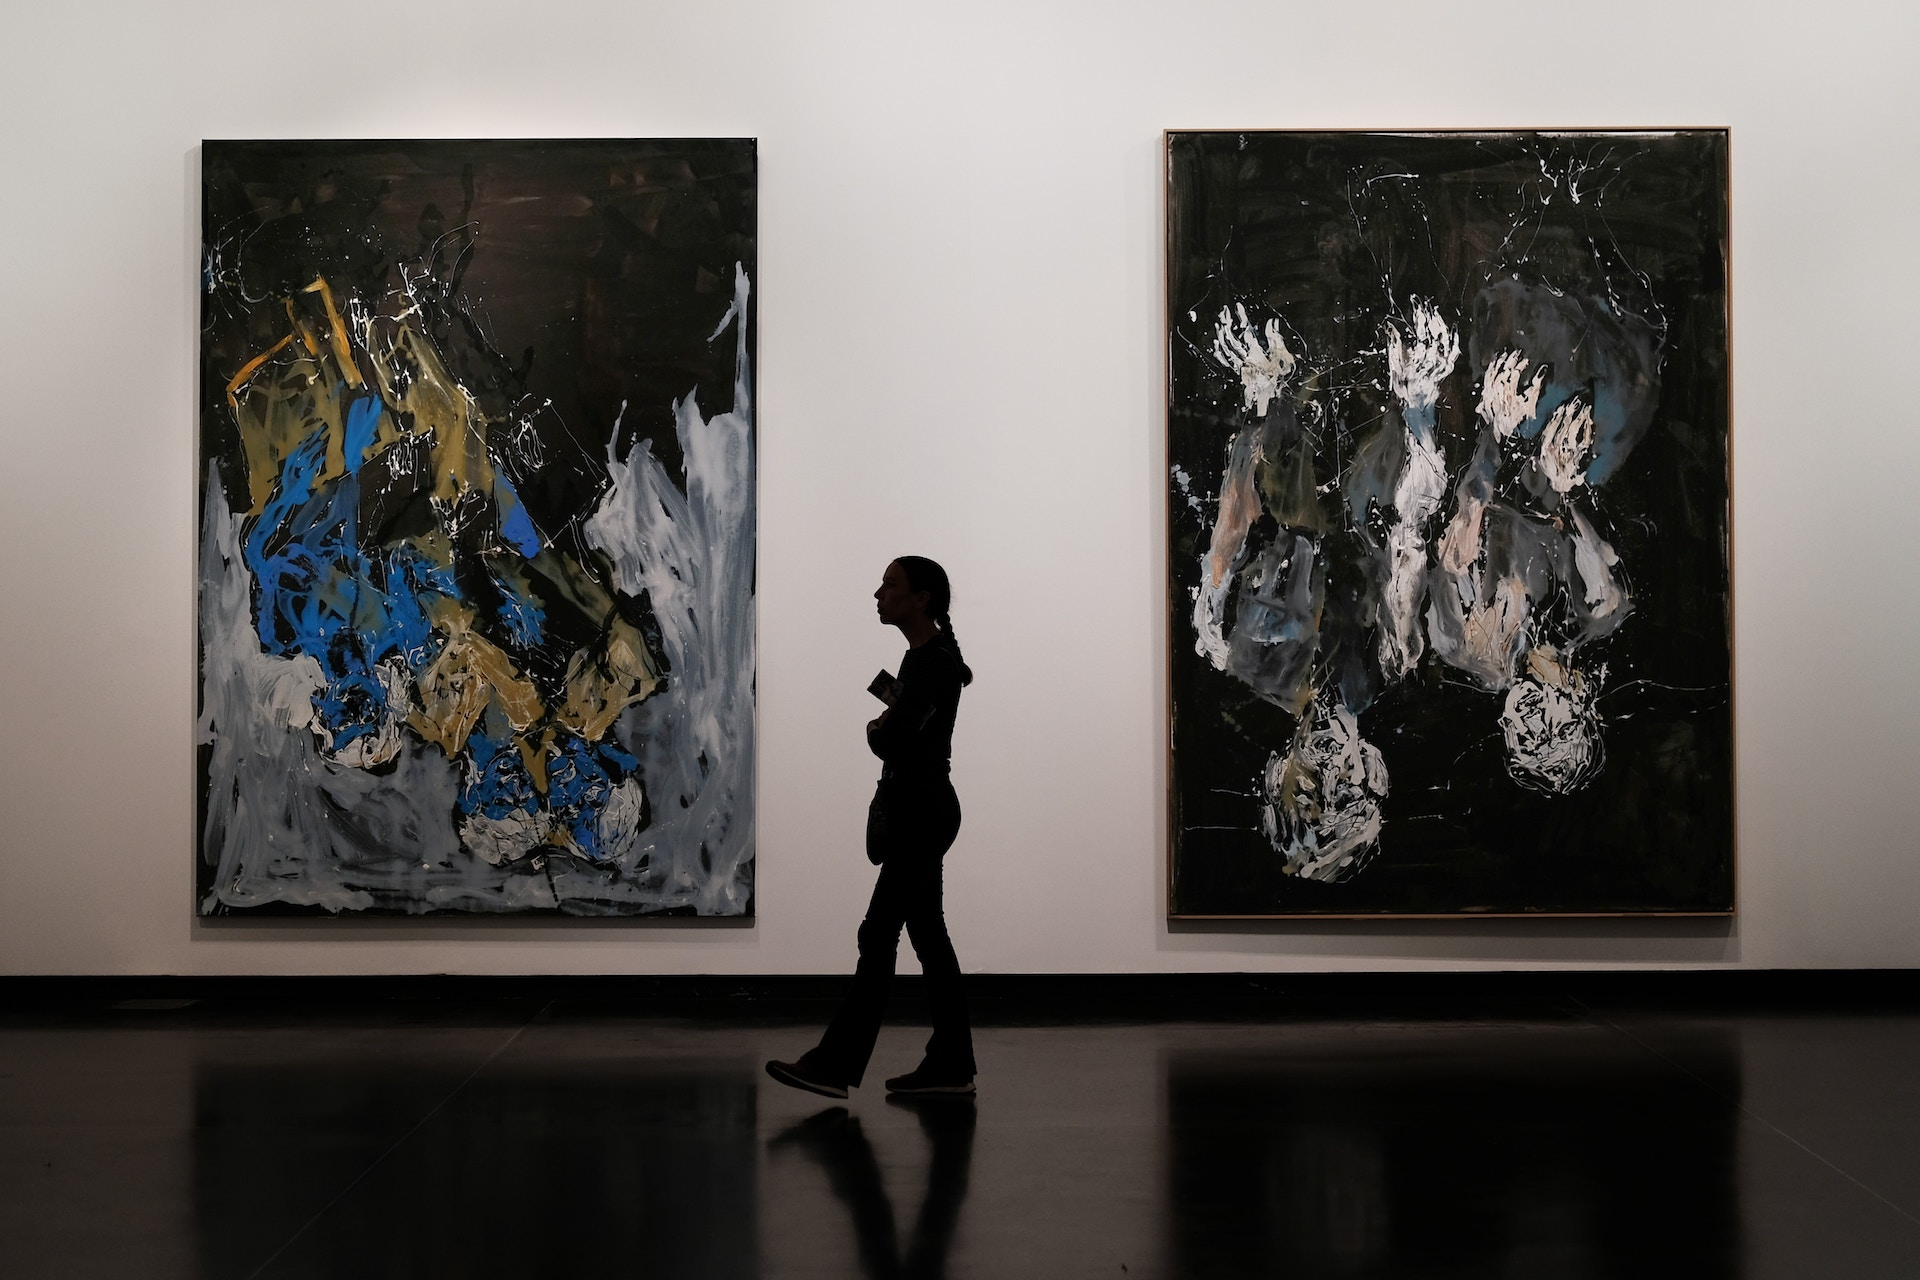 Woman walking through an art gallery meant to highlight alterntive investment opportunities in art finance